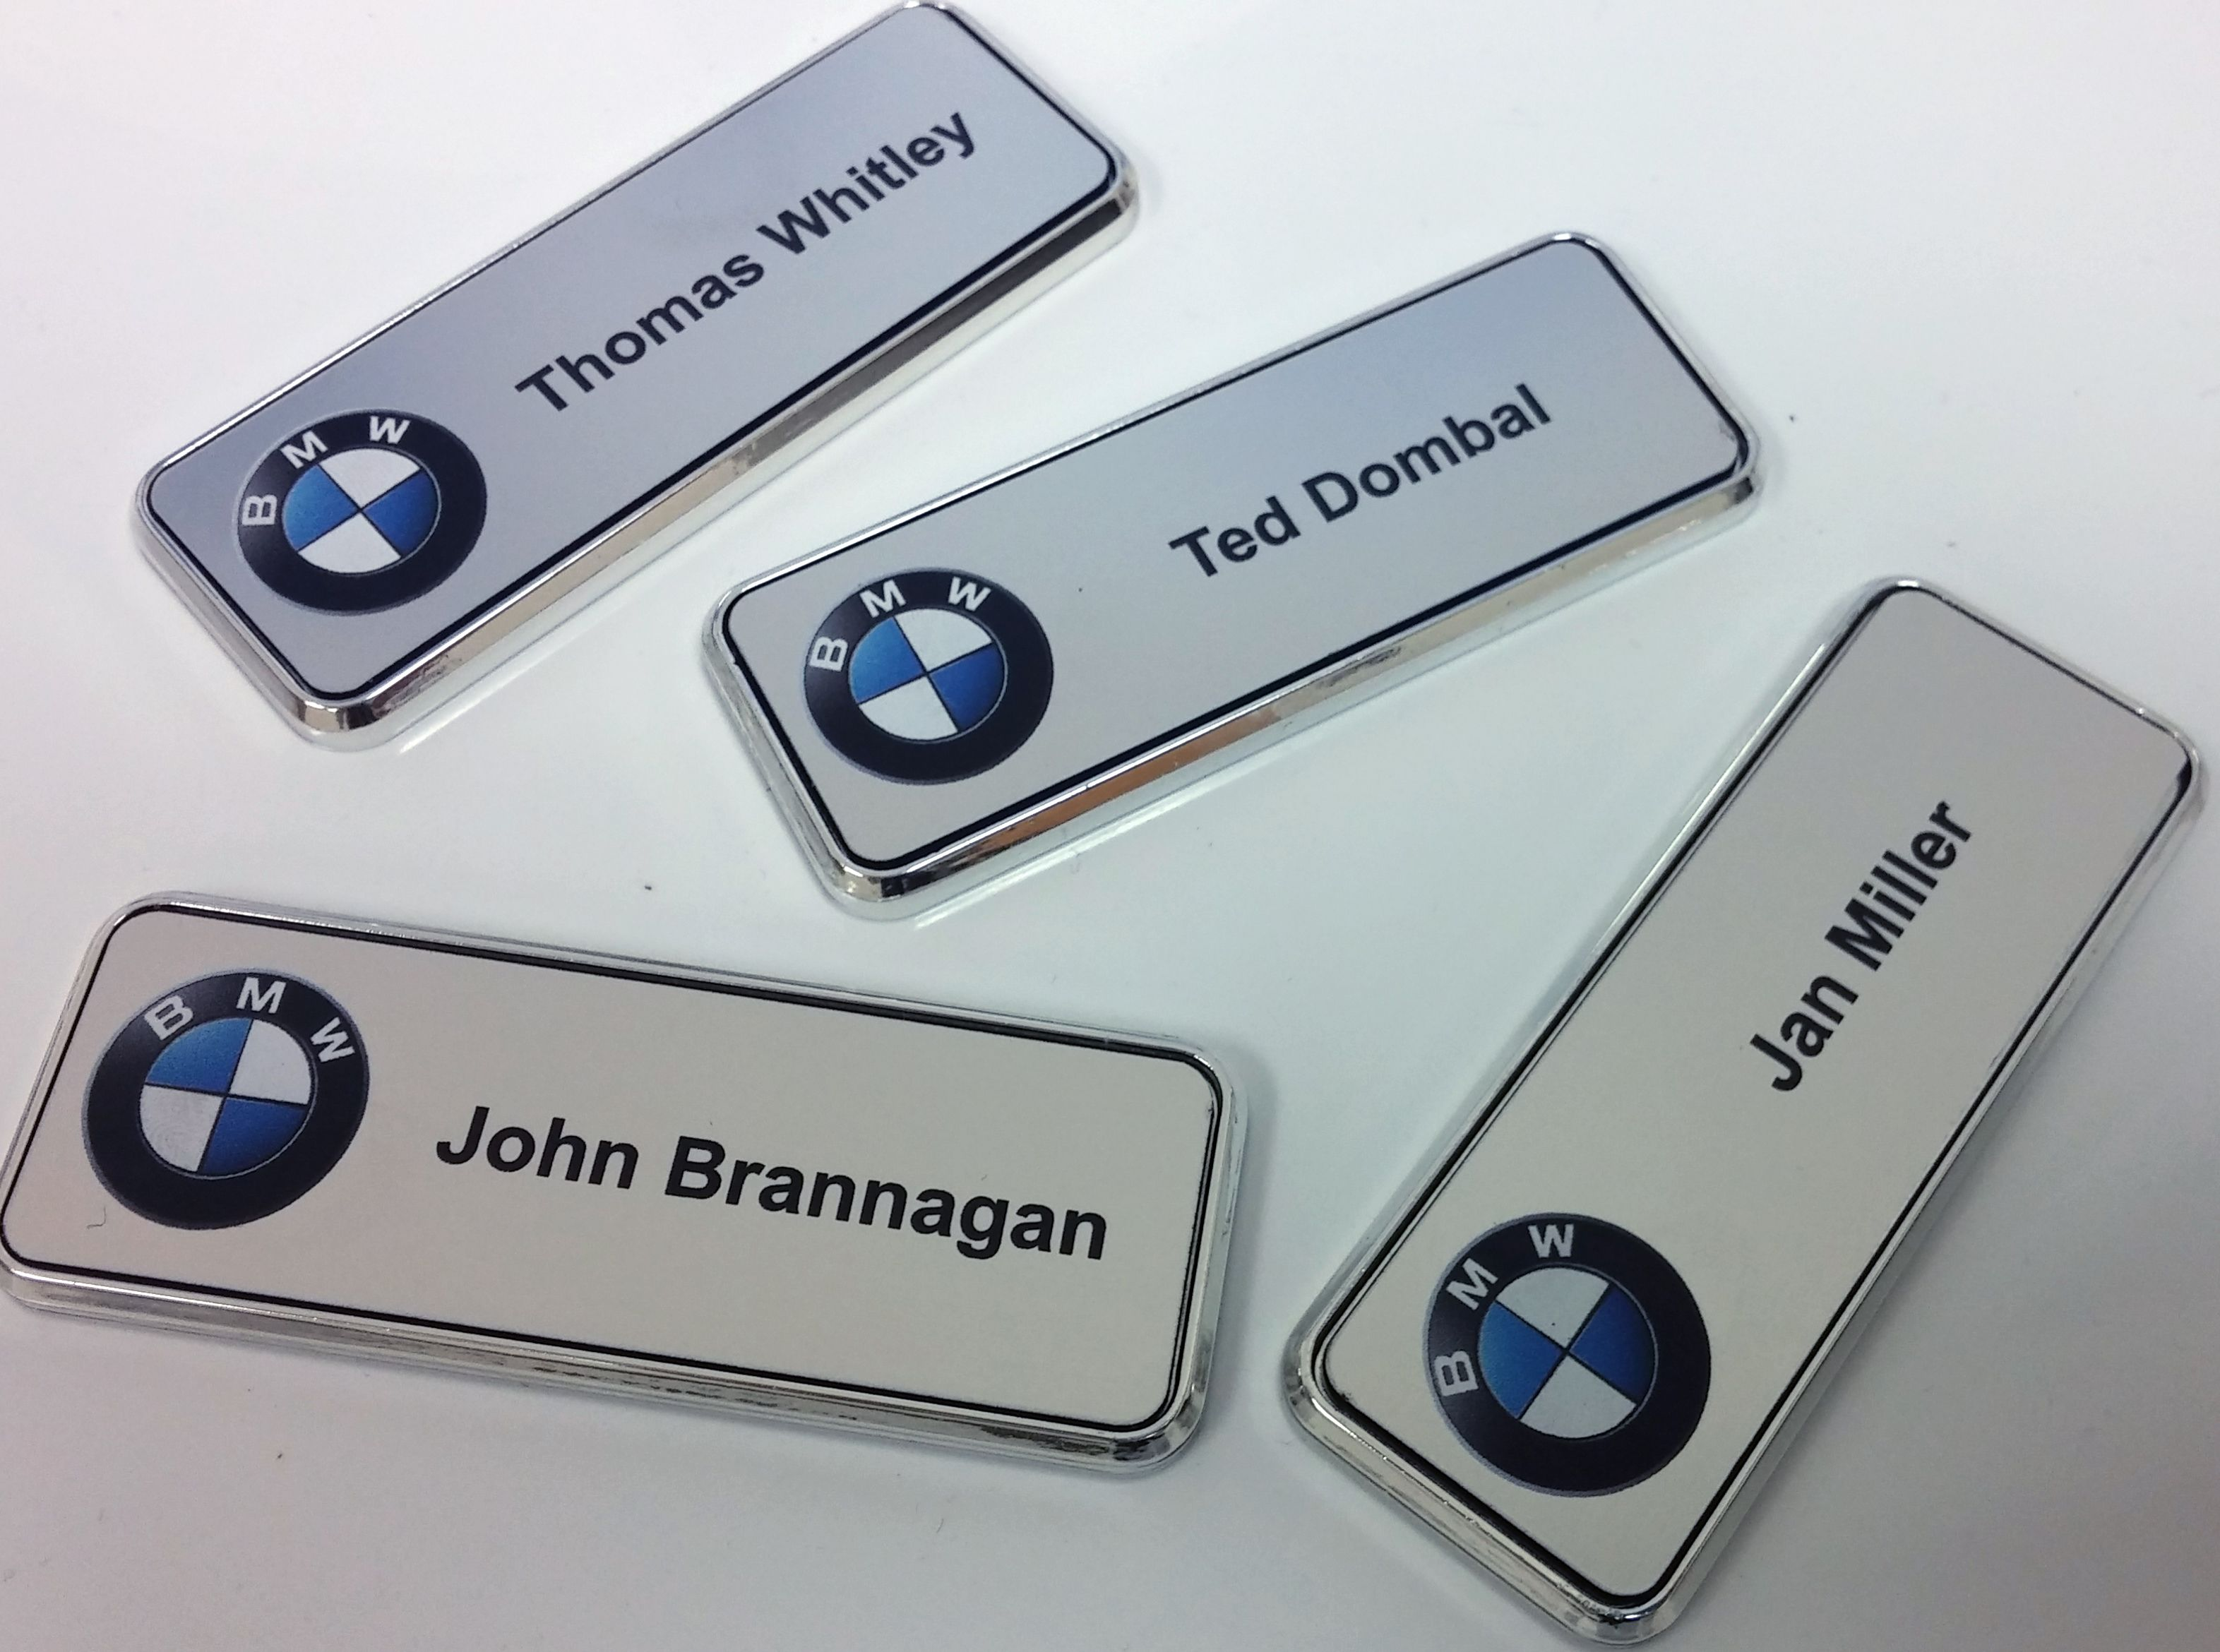 20 best pins images on pinterest name badges badges and lapel pins bmw name badges from namebadge namebadge nametags bmw silver solutioingenieria Choice Image